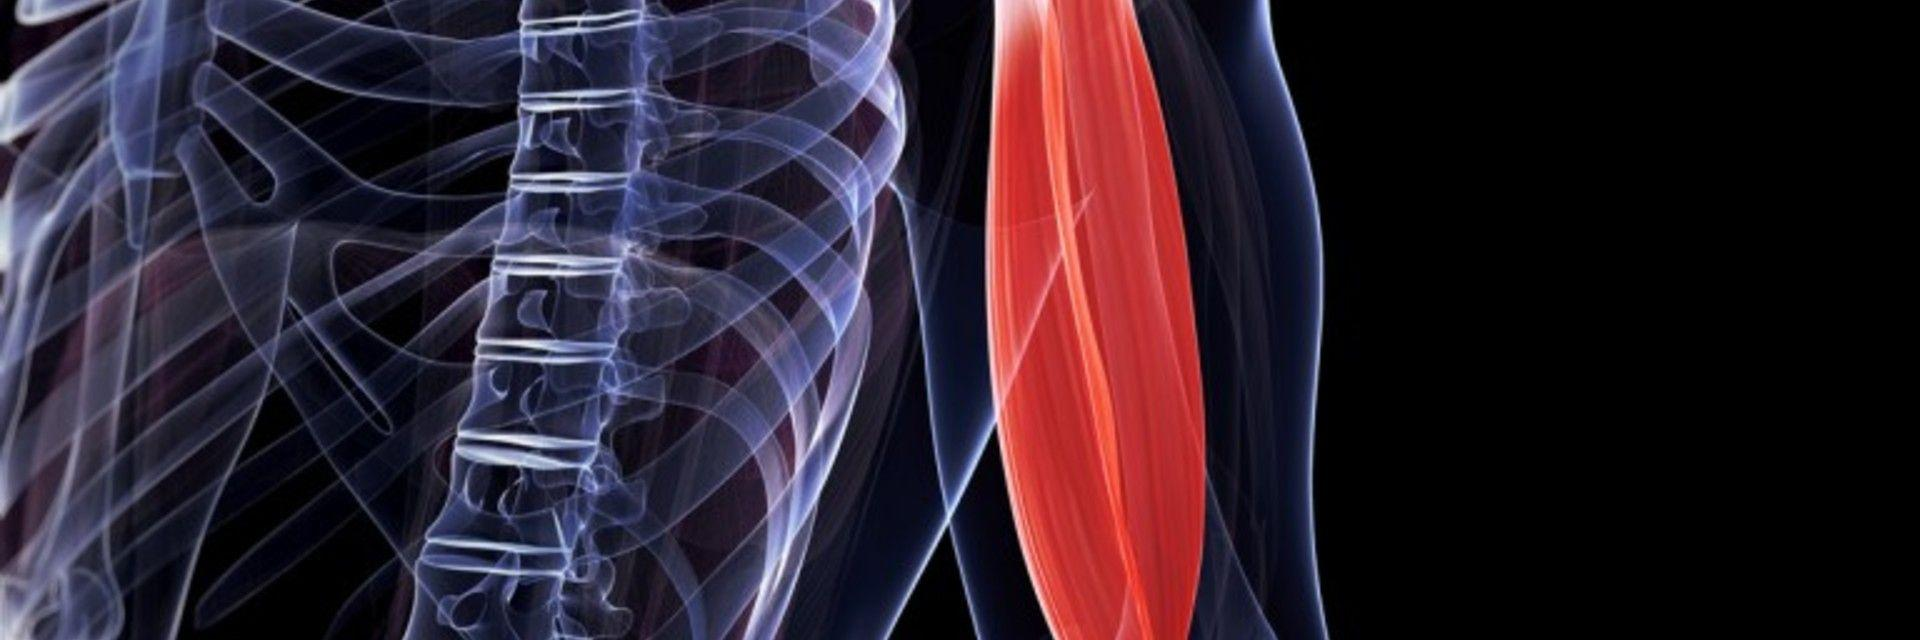 Get the Facts: Biceps Tendon Rupture